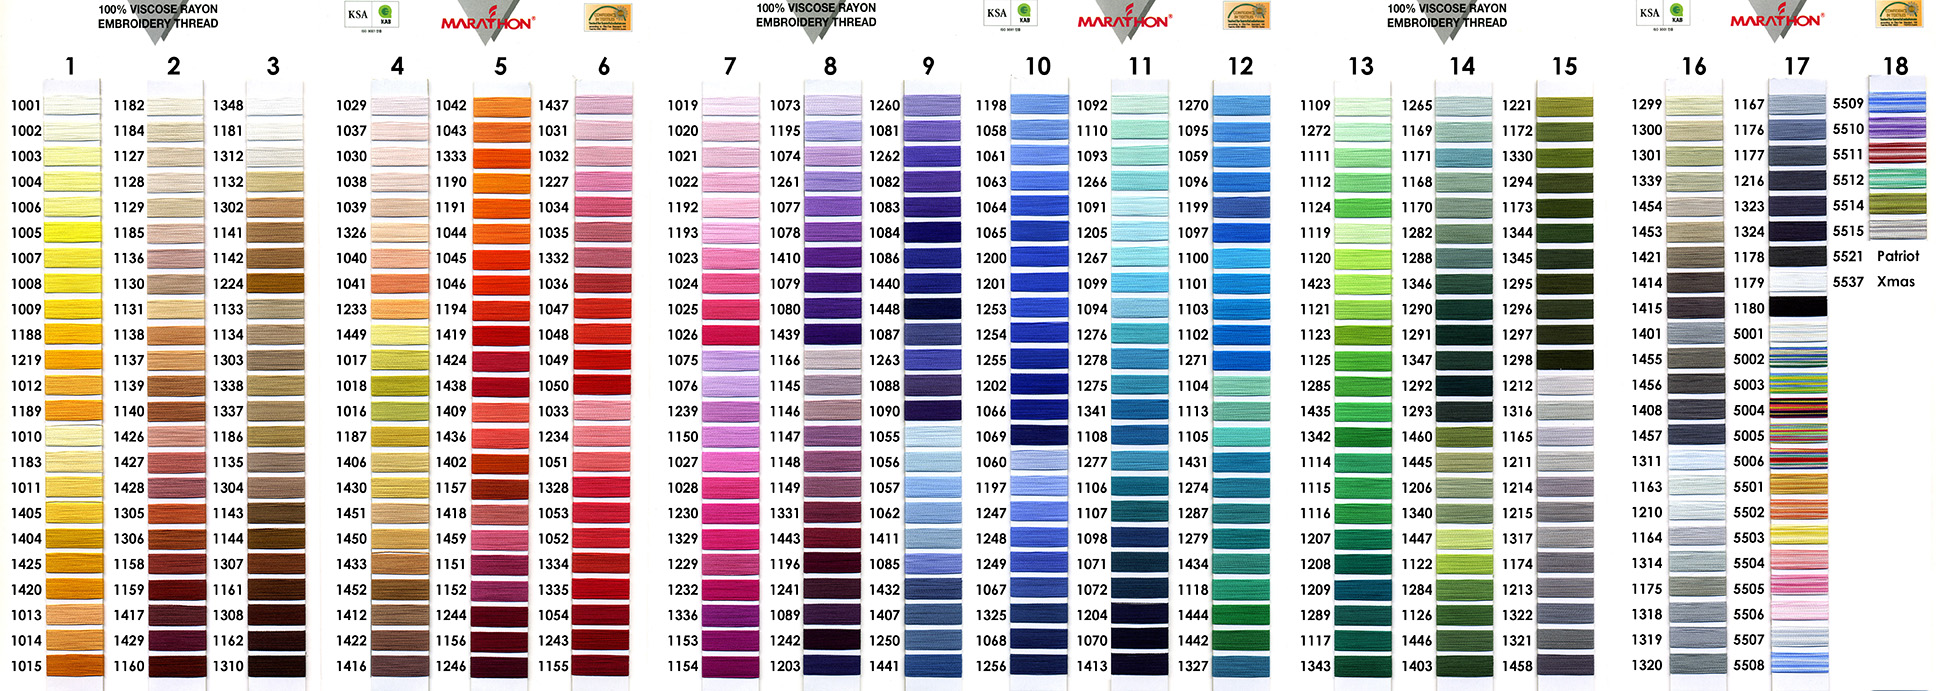 iris embroidery floss color chart: Iris embroidery floss color chart makaroka com